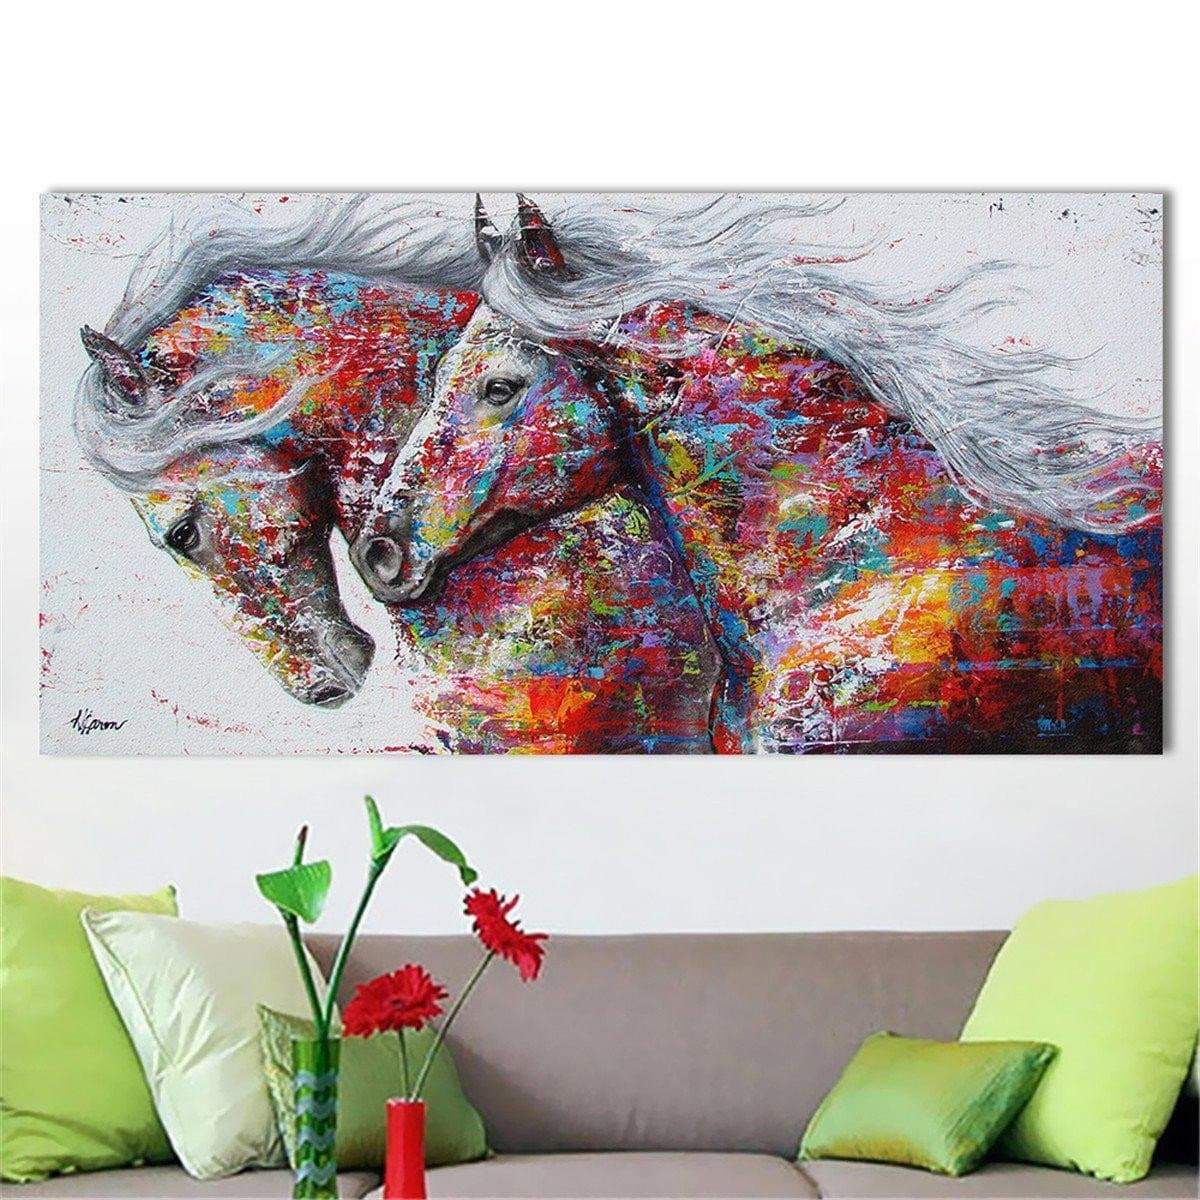 Colored Horse Painting The Cheap Decor Ruedestableaux Com